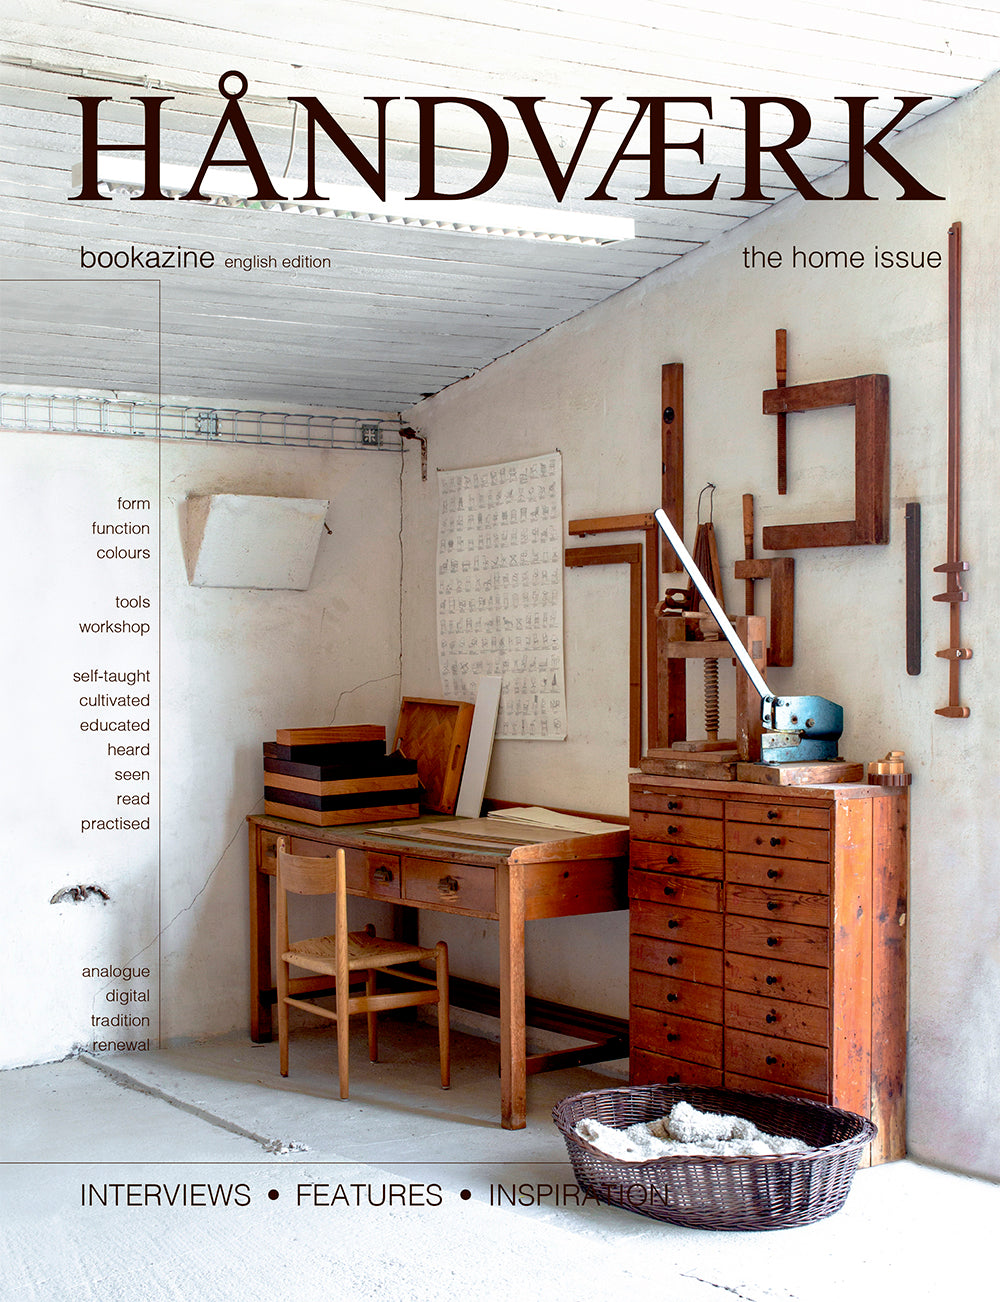 HÅNDVÆRK bookazine no.3 english text